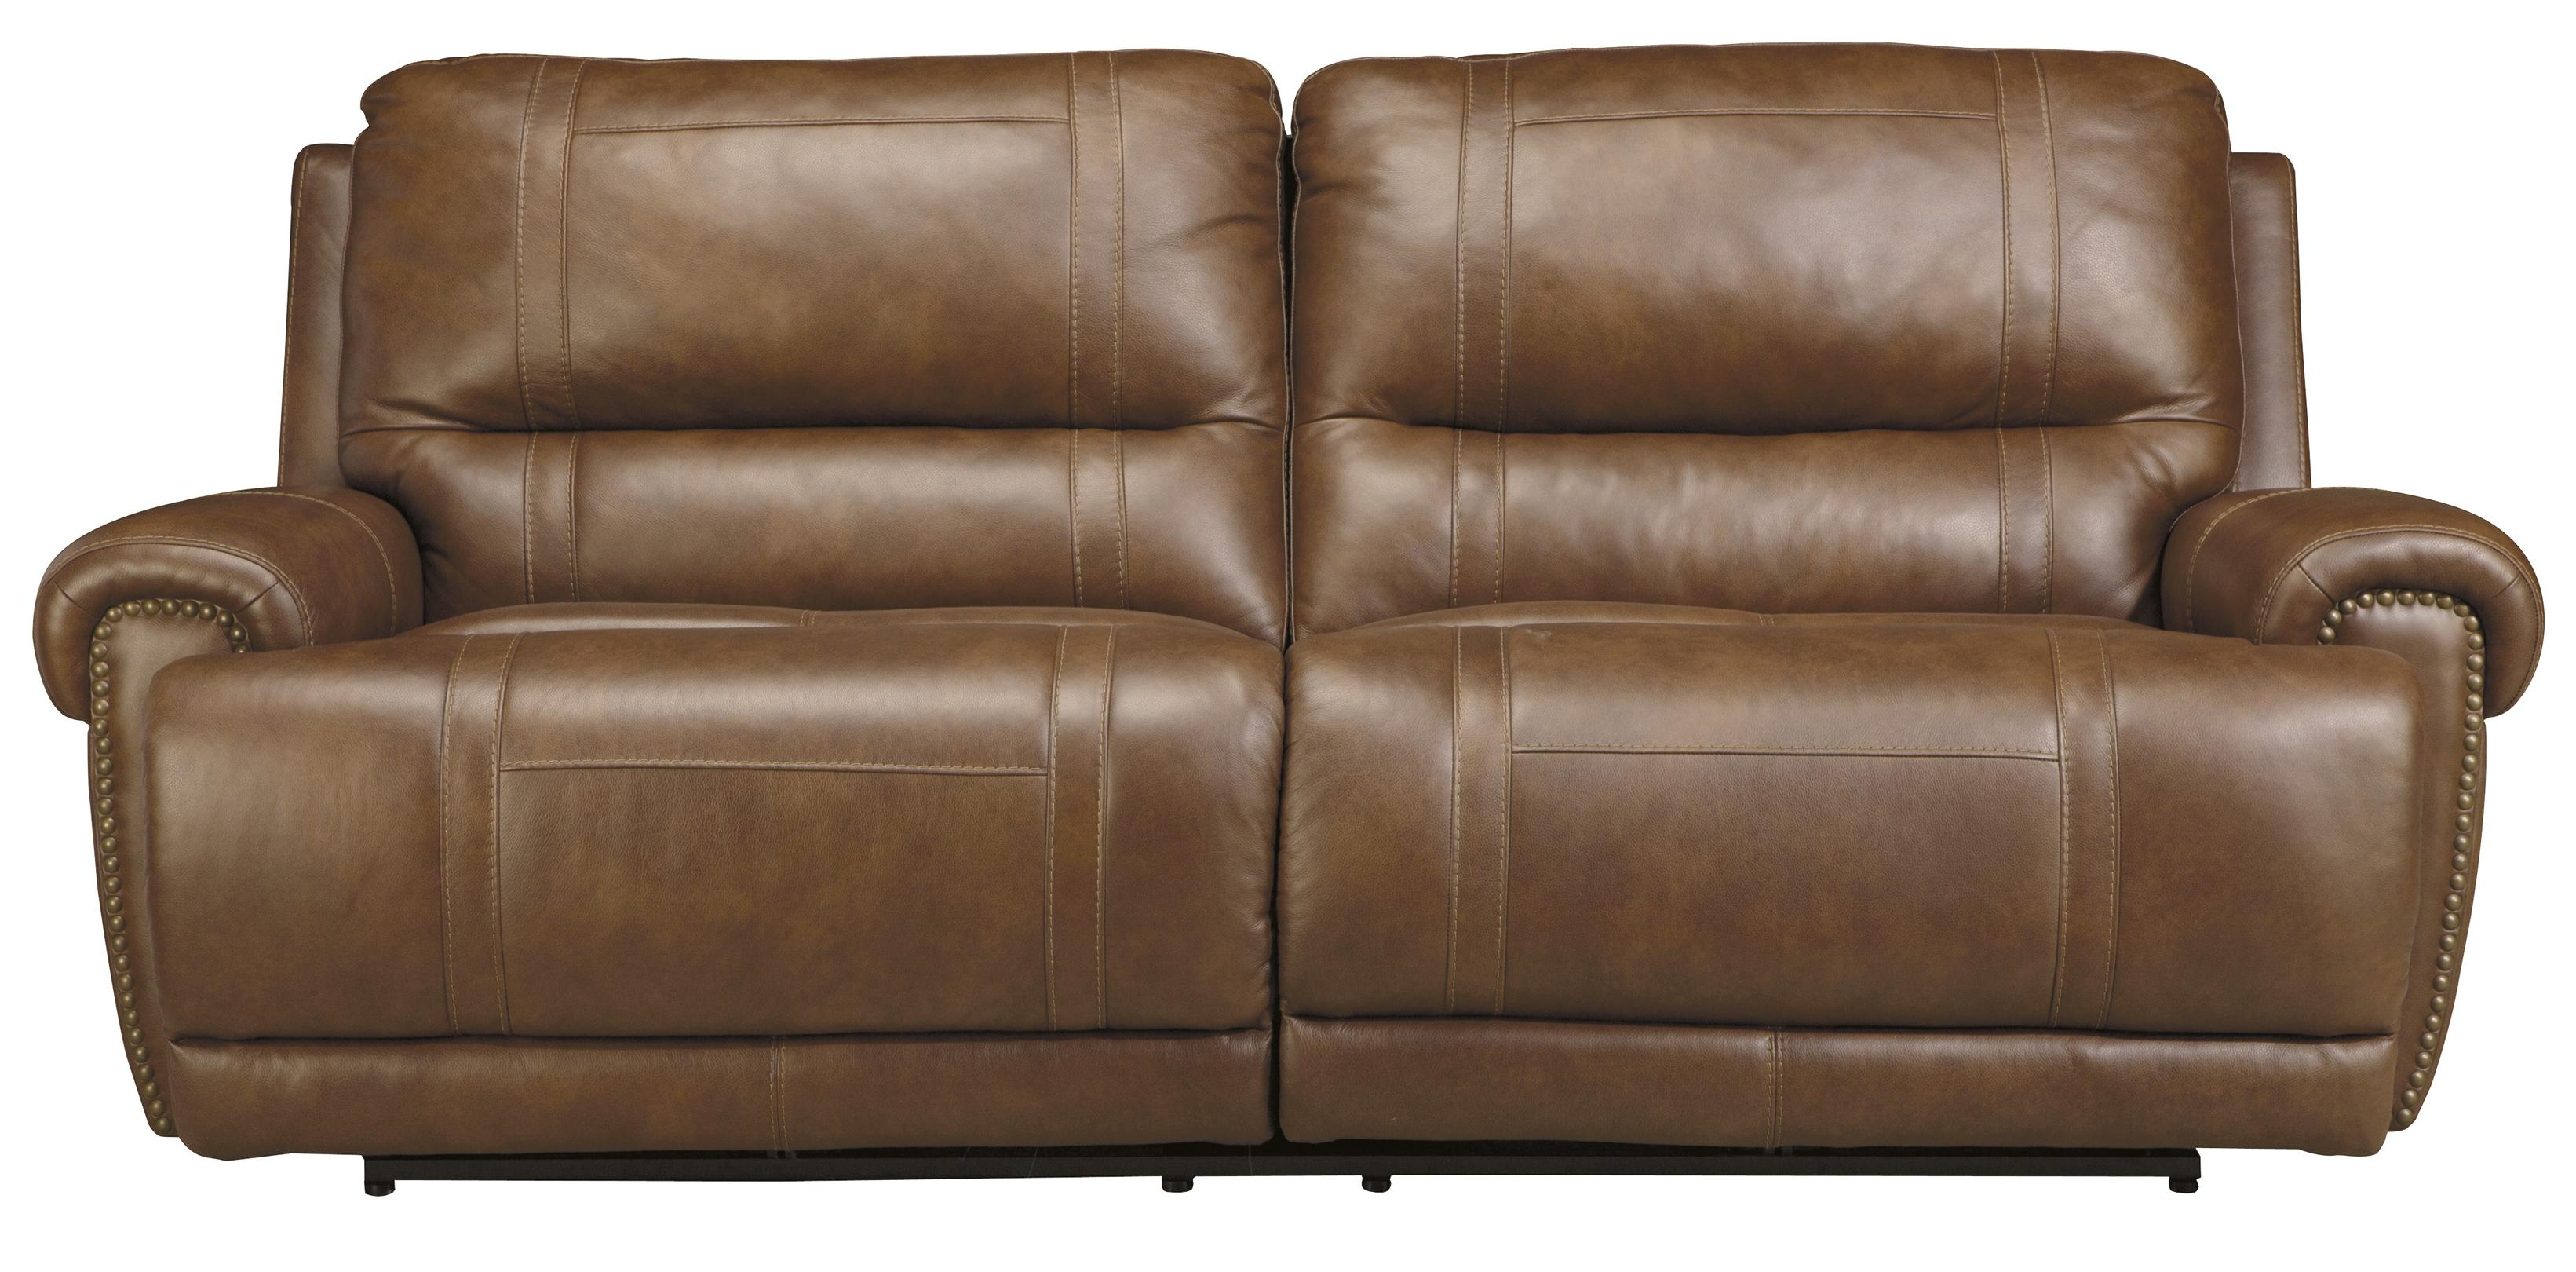 lazy boy sofa furniture village make slipcover without sewing 4 seat leather reclining  thesofa